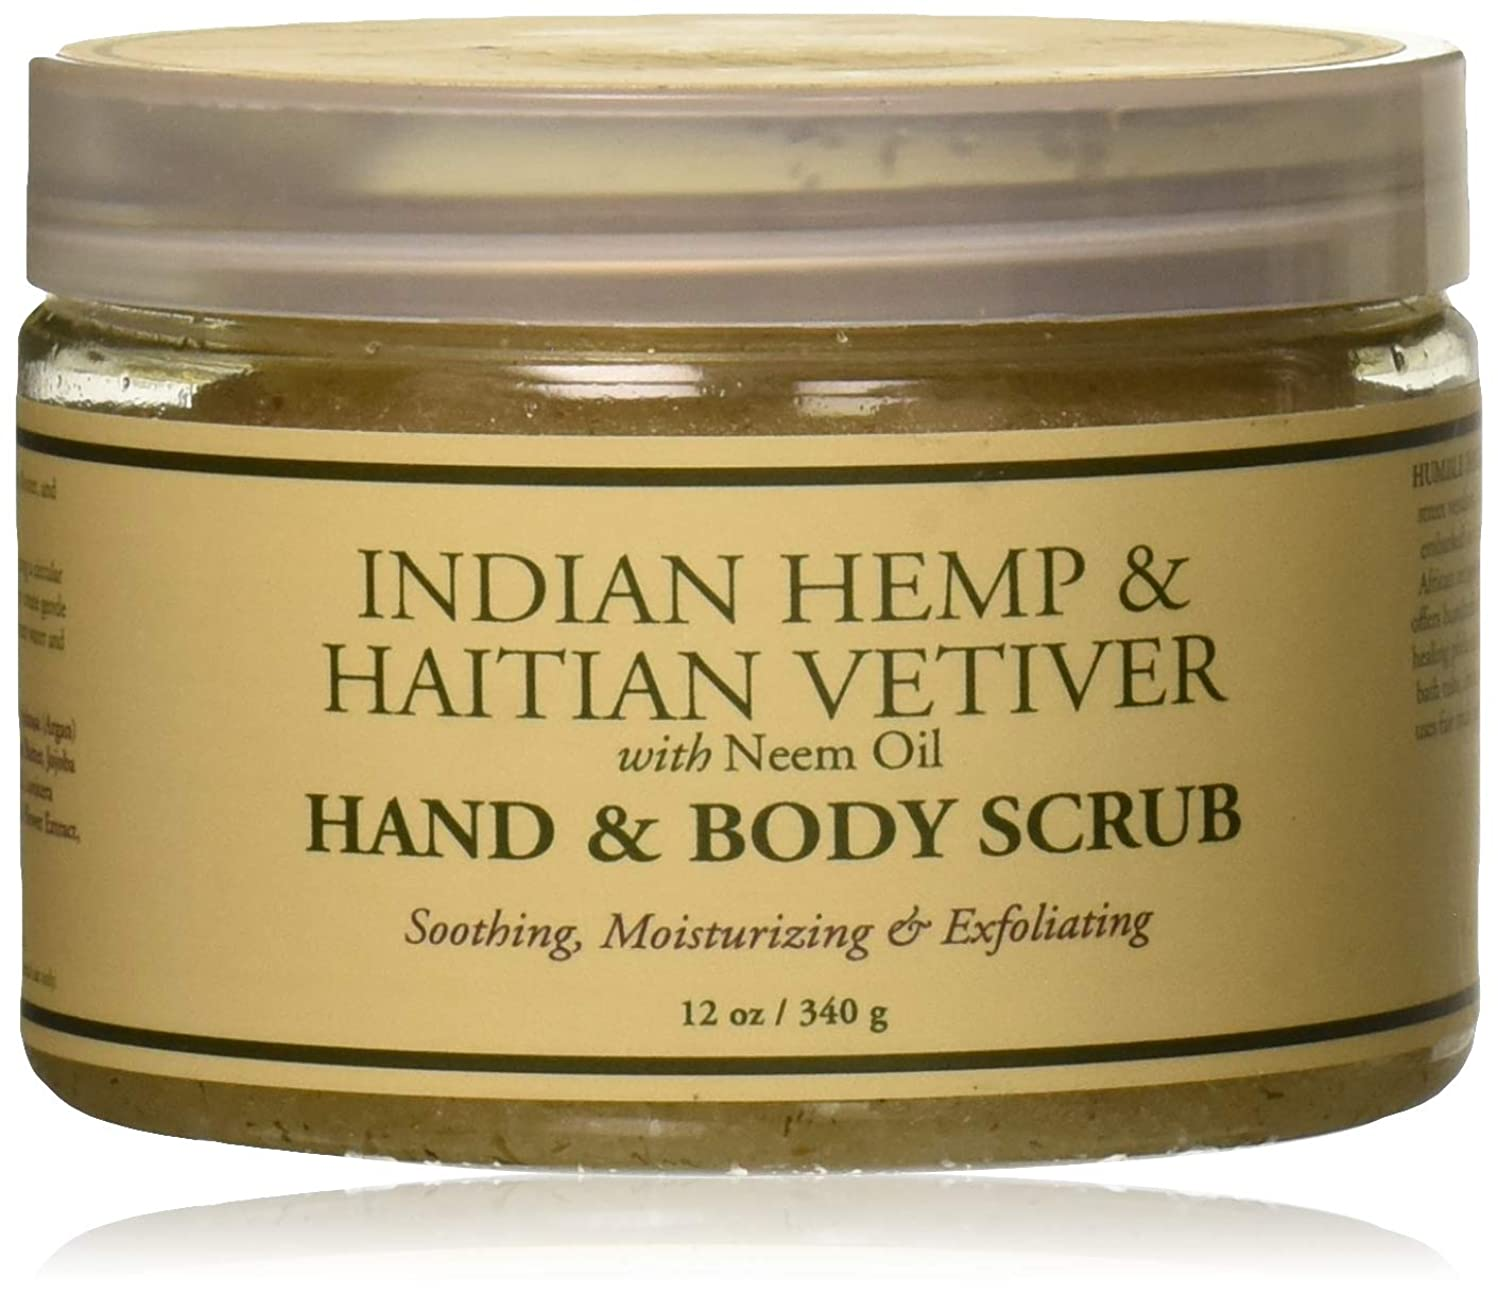 機知に富んだ思いやりのあるエスカレーターHand and Body Scrub - Indian Hemp and Haitian Vetiver - 12 oz by Nubian Heritage